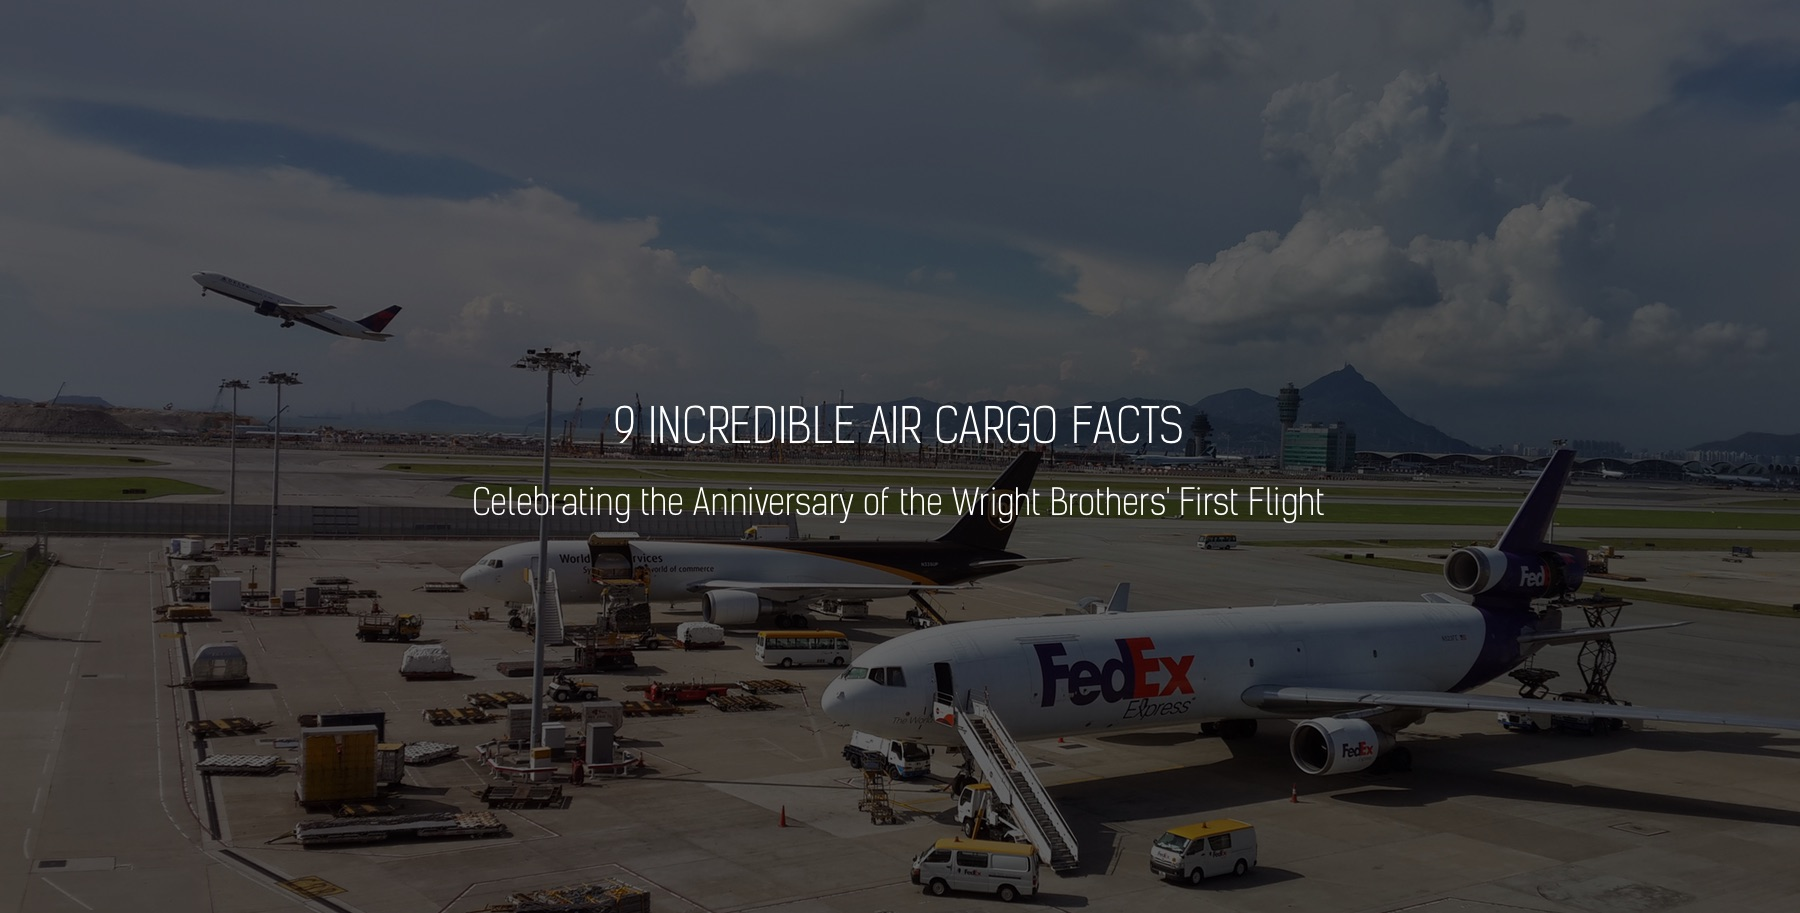 Air cargo facts for the Wright Brothers' first flight